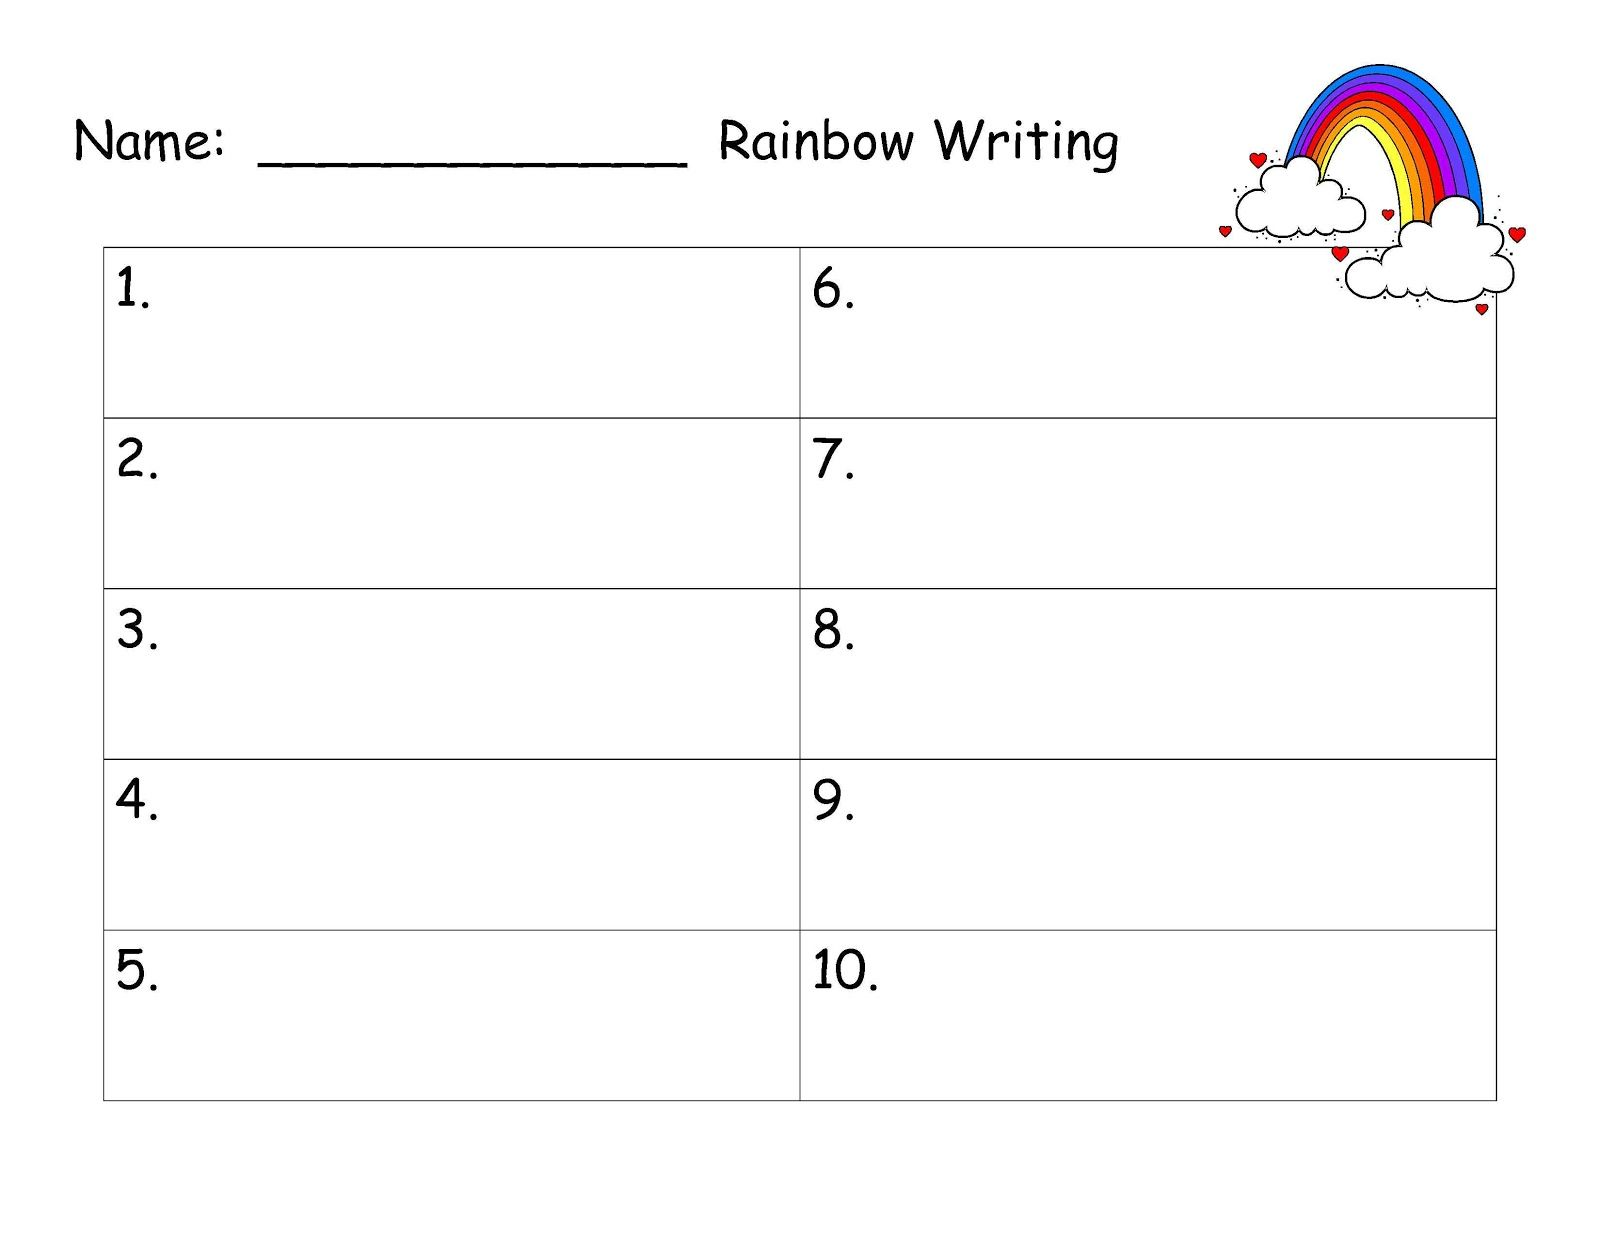 Rainbow Writing Spelling Words Template